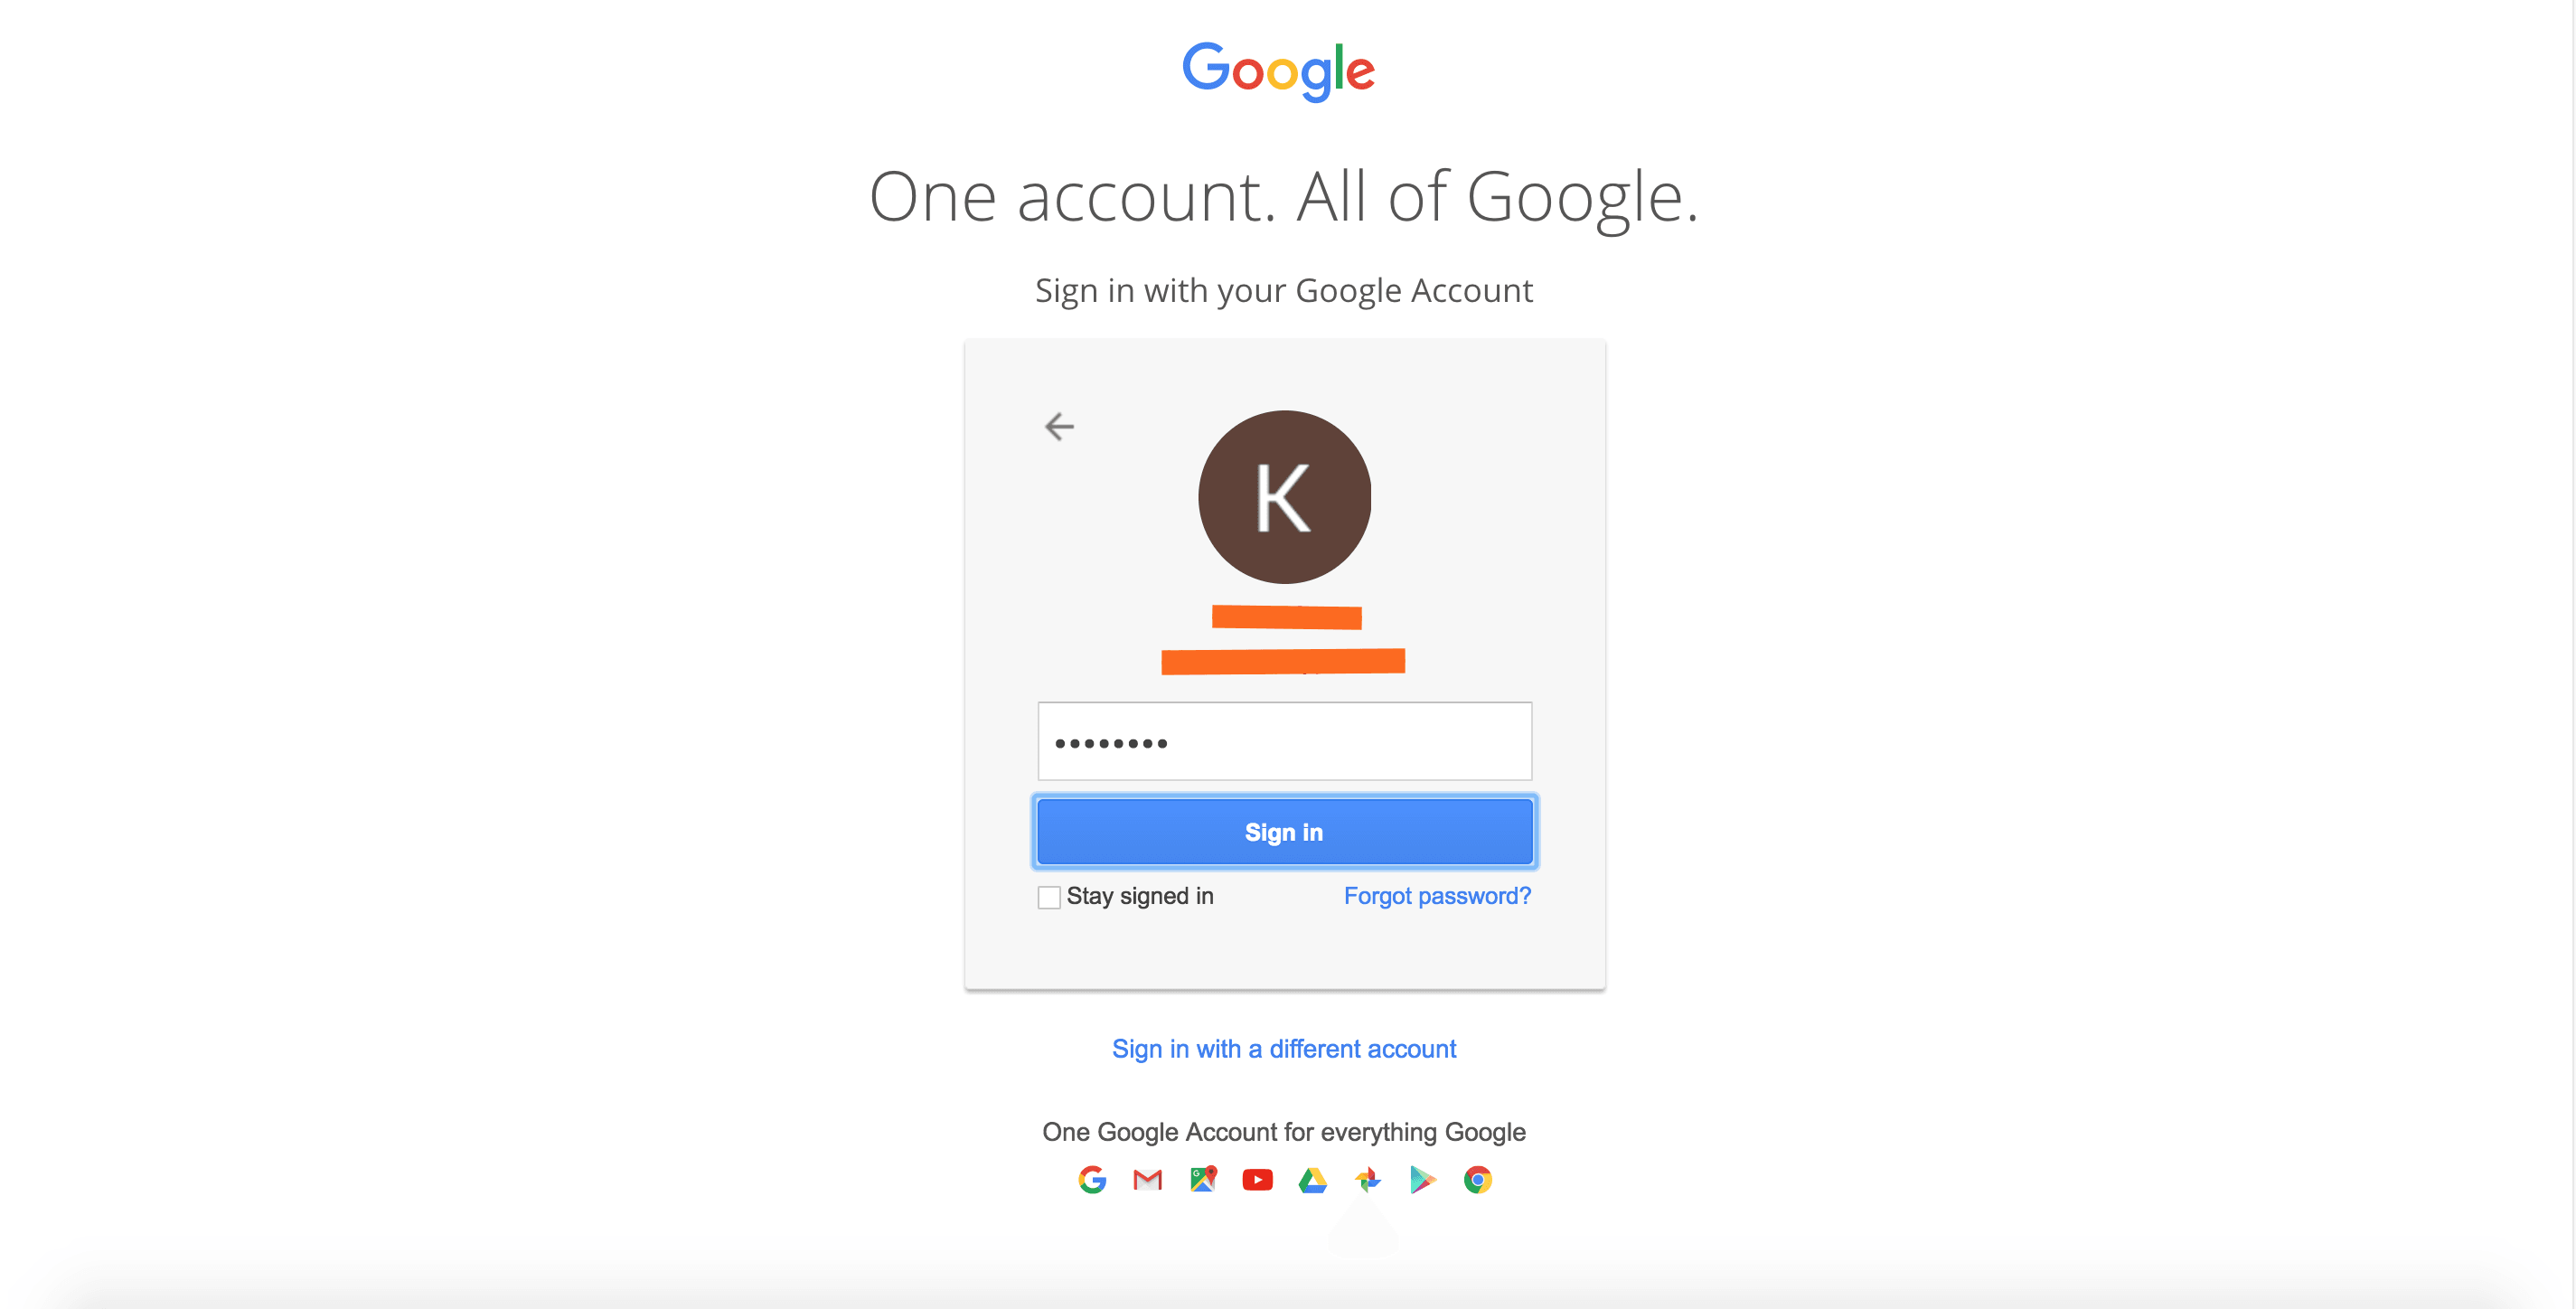 Login to Google Tag Manager at <strong>https://www.google.com/analytics/tag-manager/</strong>.